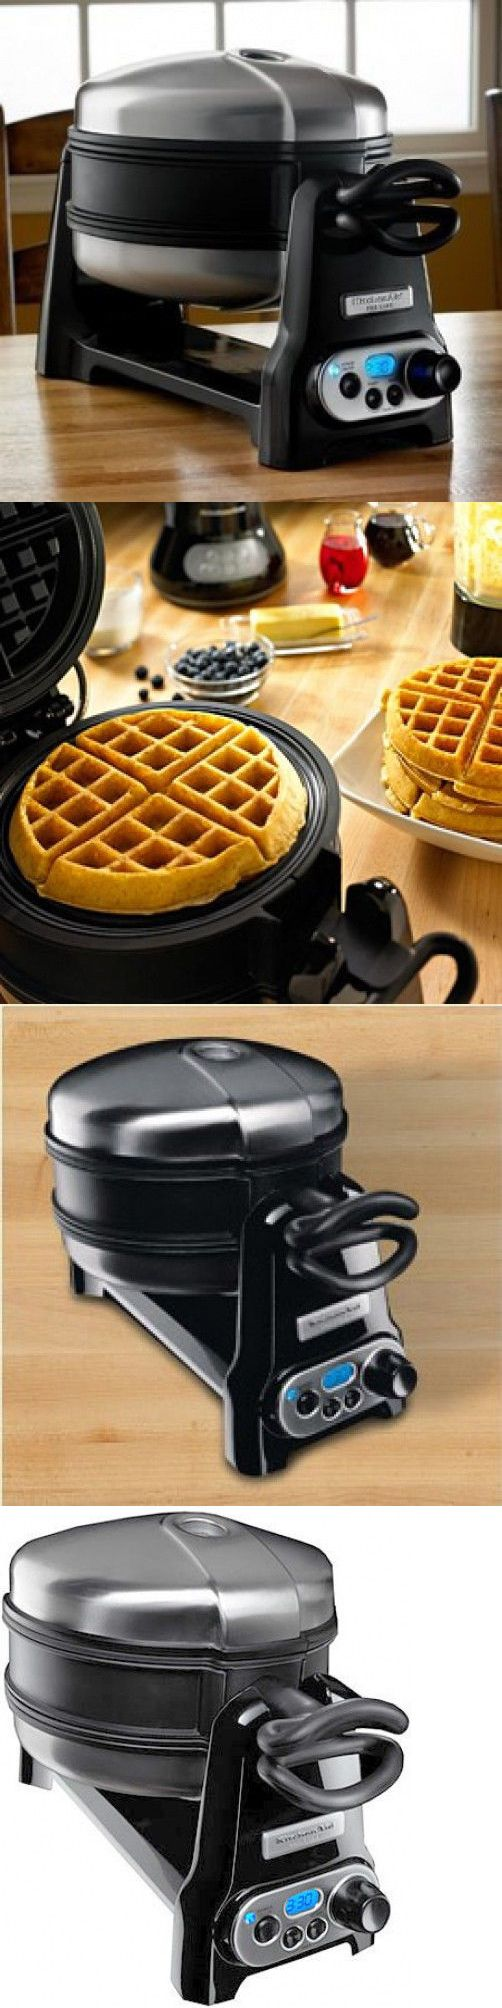 Waffle Makers 168763: Kitchenaid Kwb110ob Non-Stick Ceramic Grand Belgian Waffle Baker Maker Auto Shut -> BUY IT NOW ONLY: $299.99 on eBay!